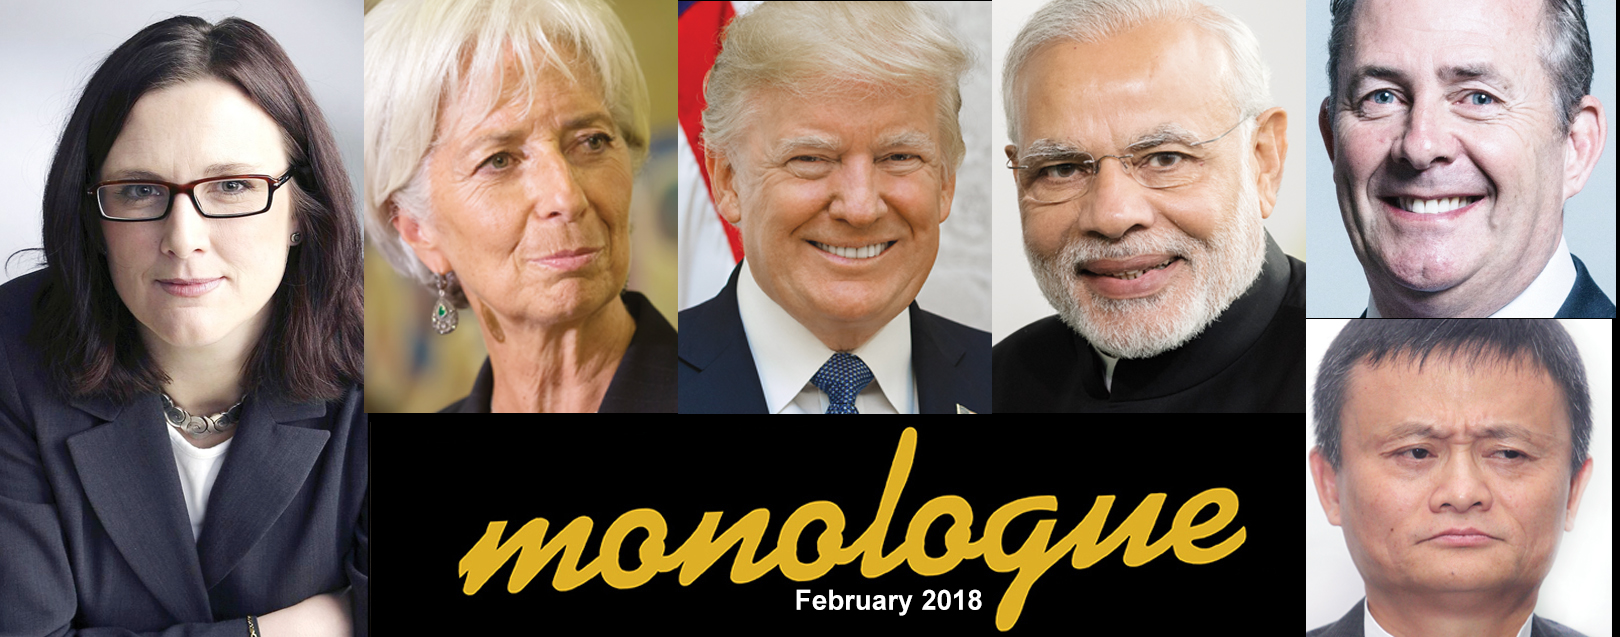 Monologue March 2018 issue